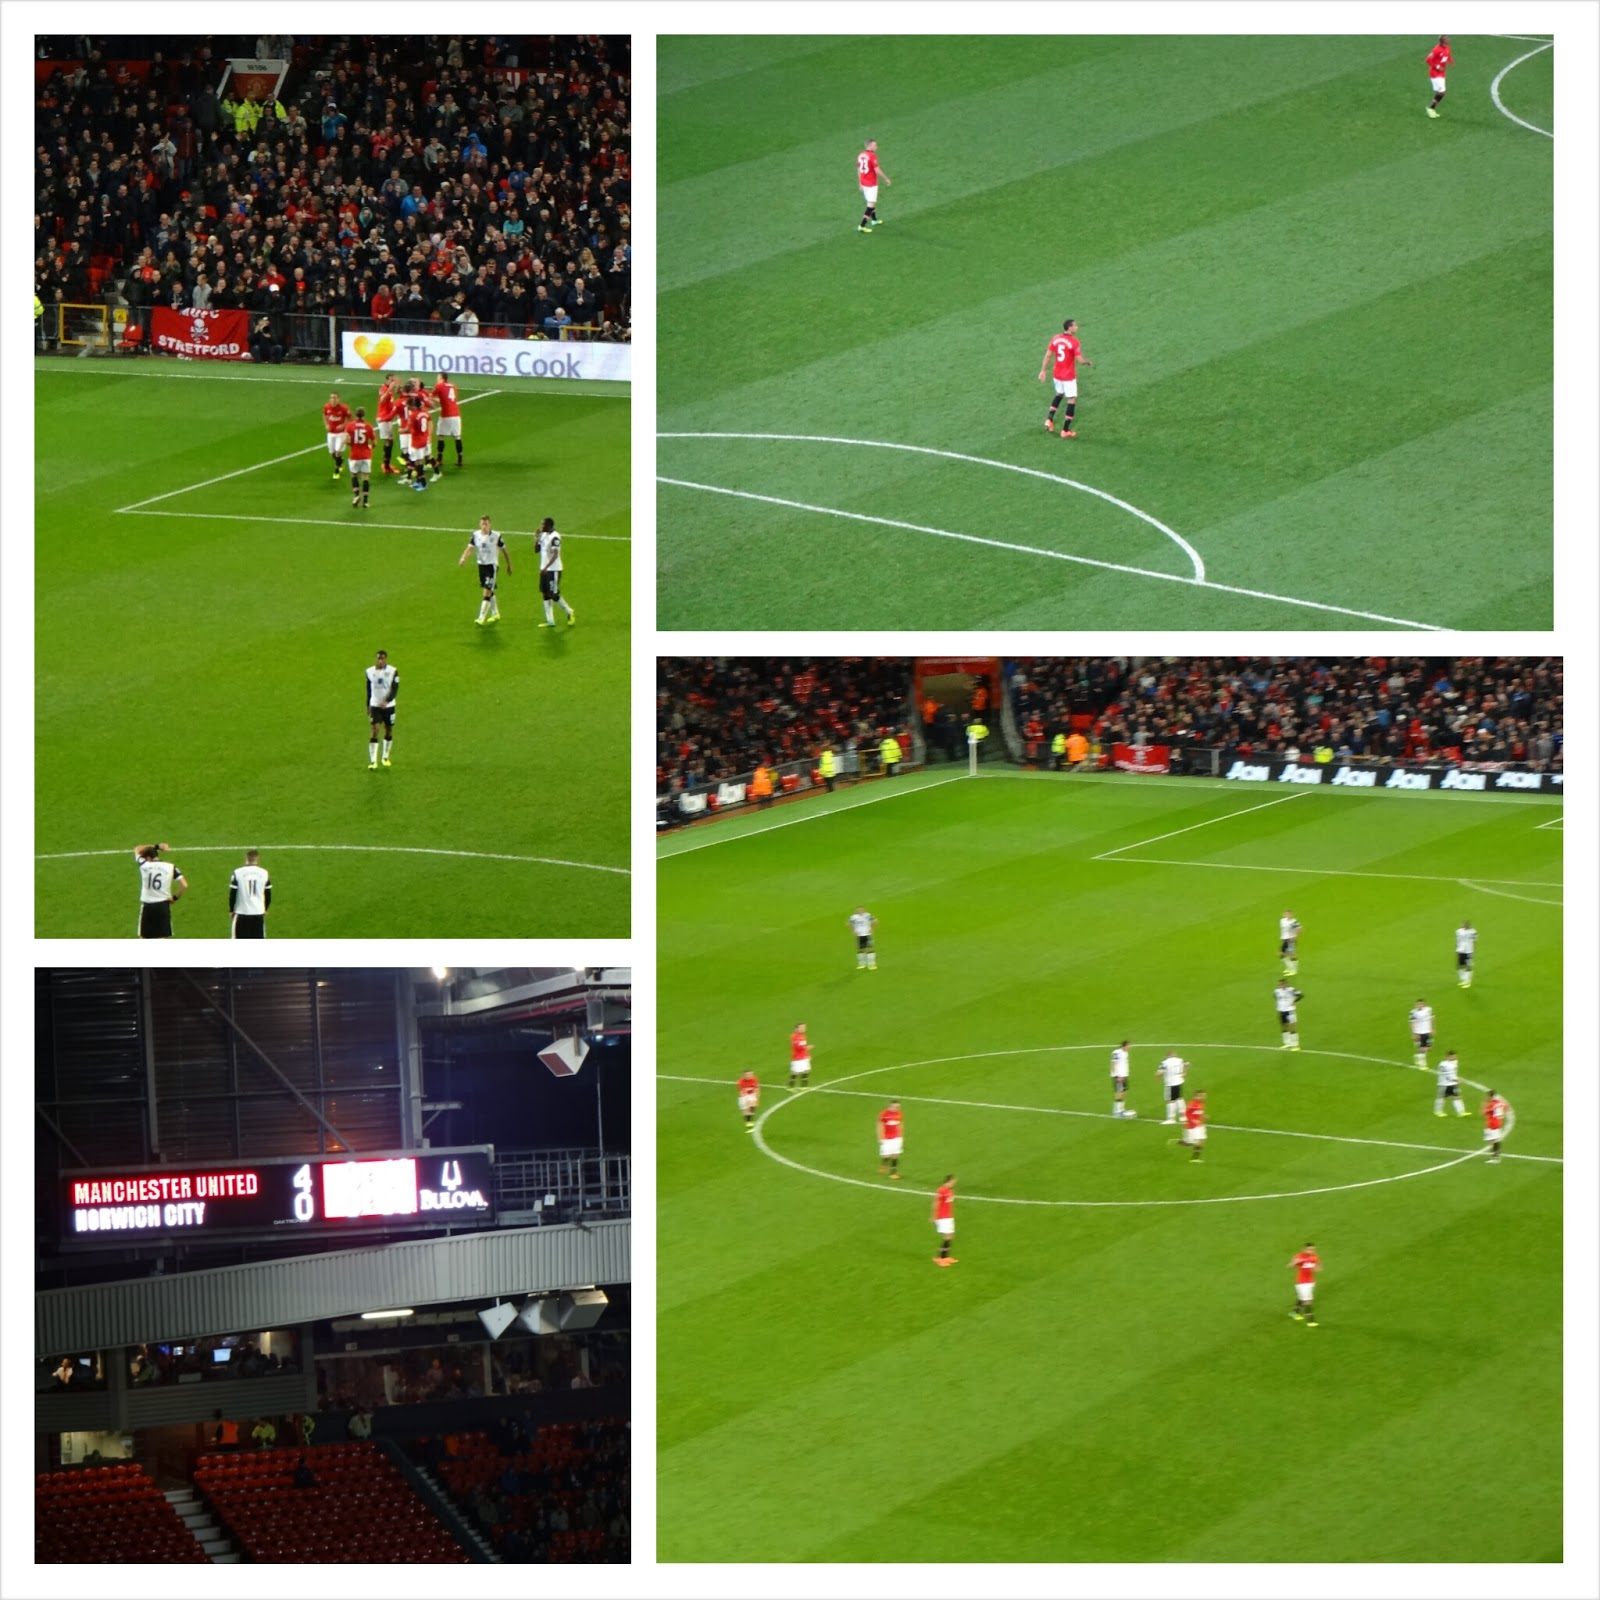 Manchester United vs Norwich City, Capital One Cup